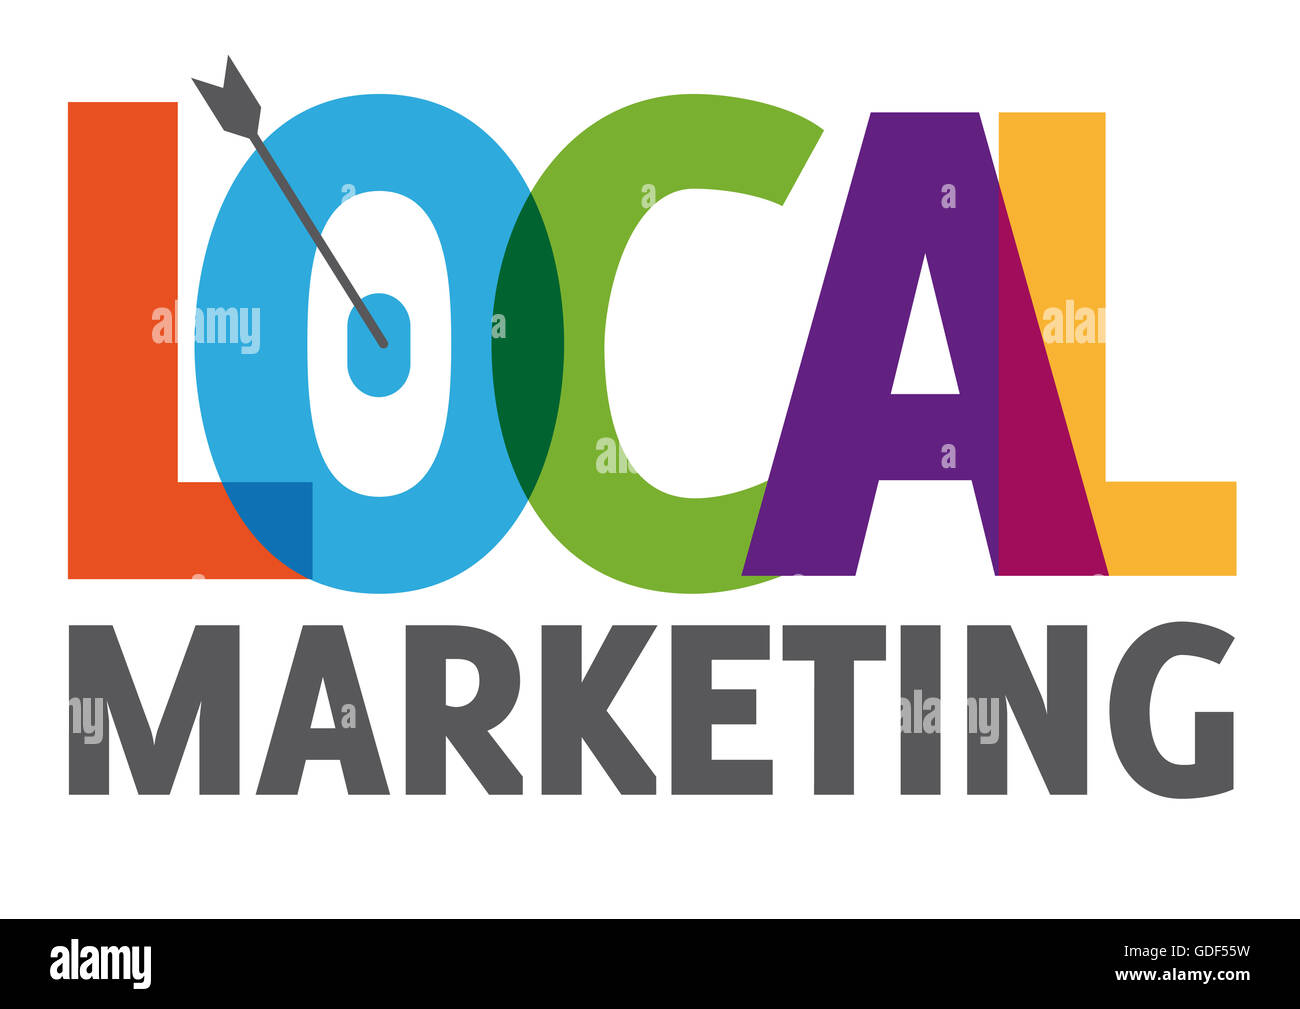 local marketing symbol - colorful letters - Stock Image